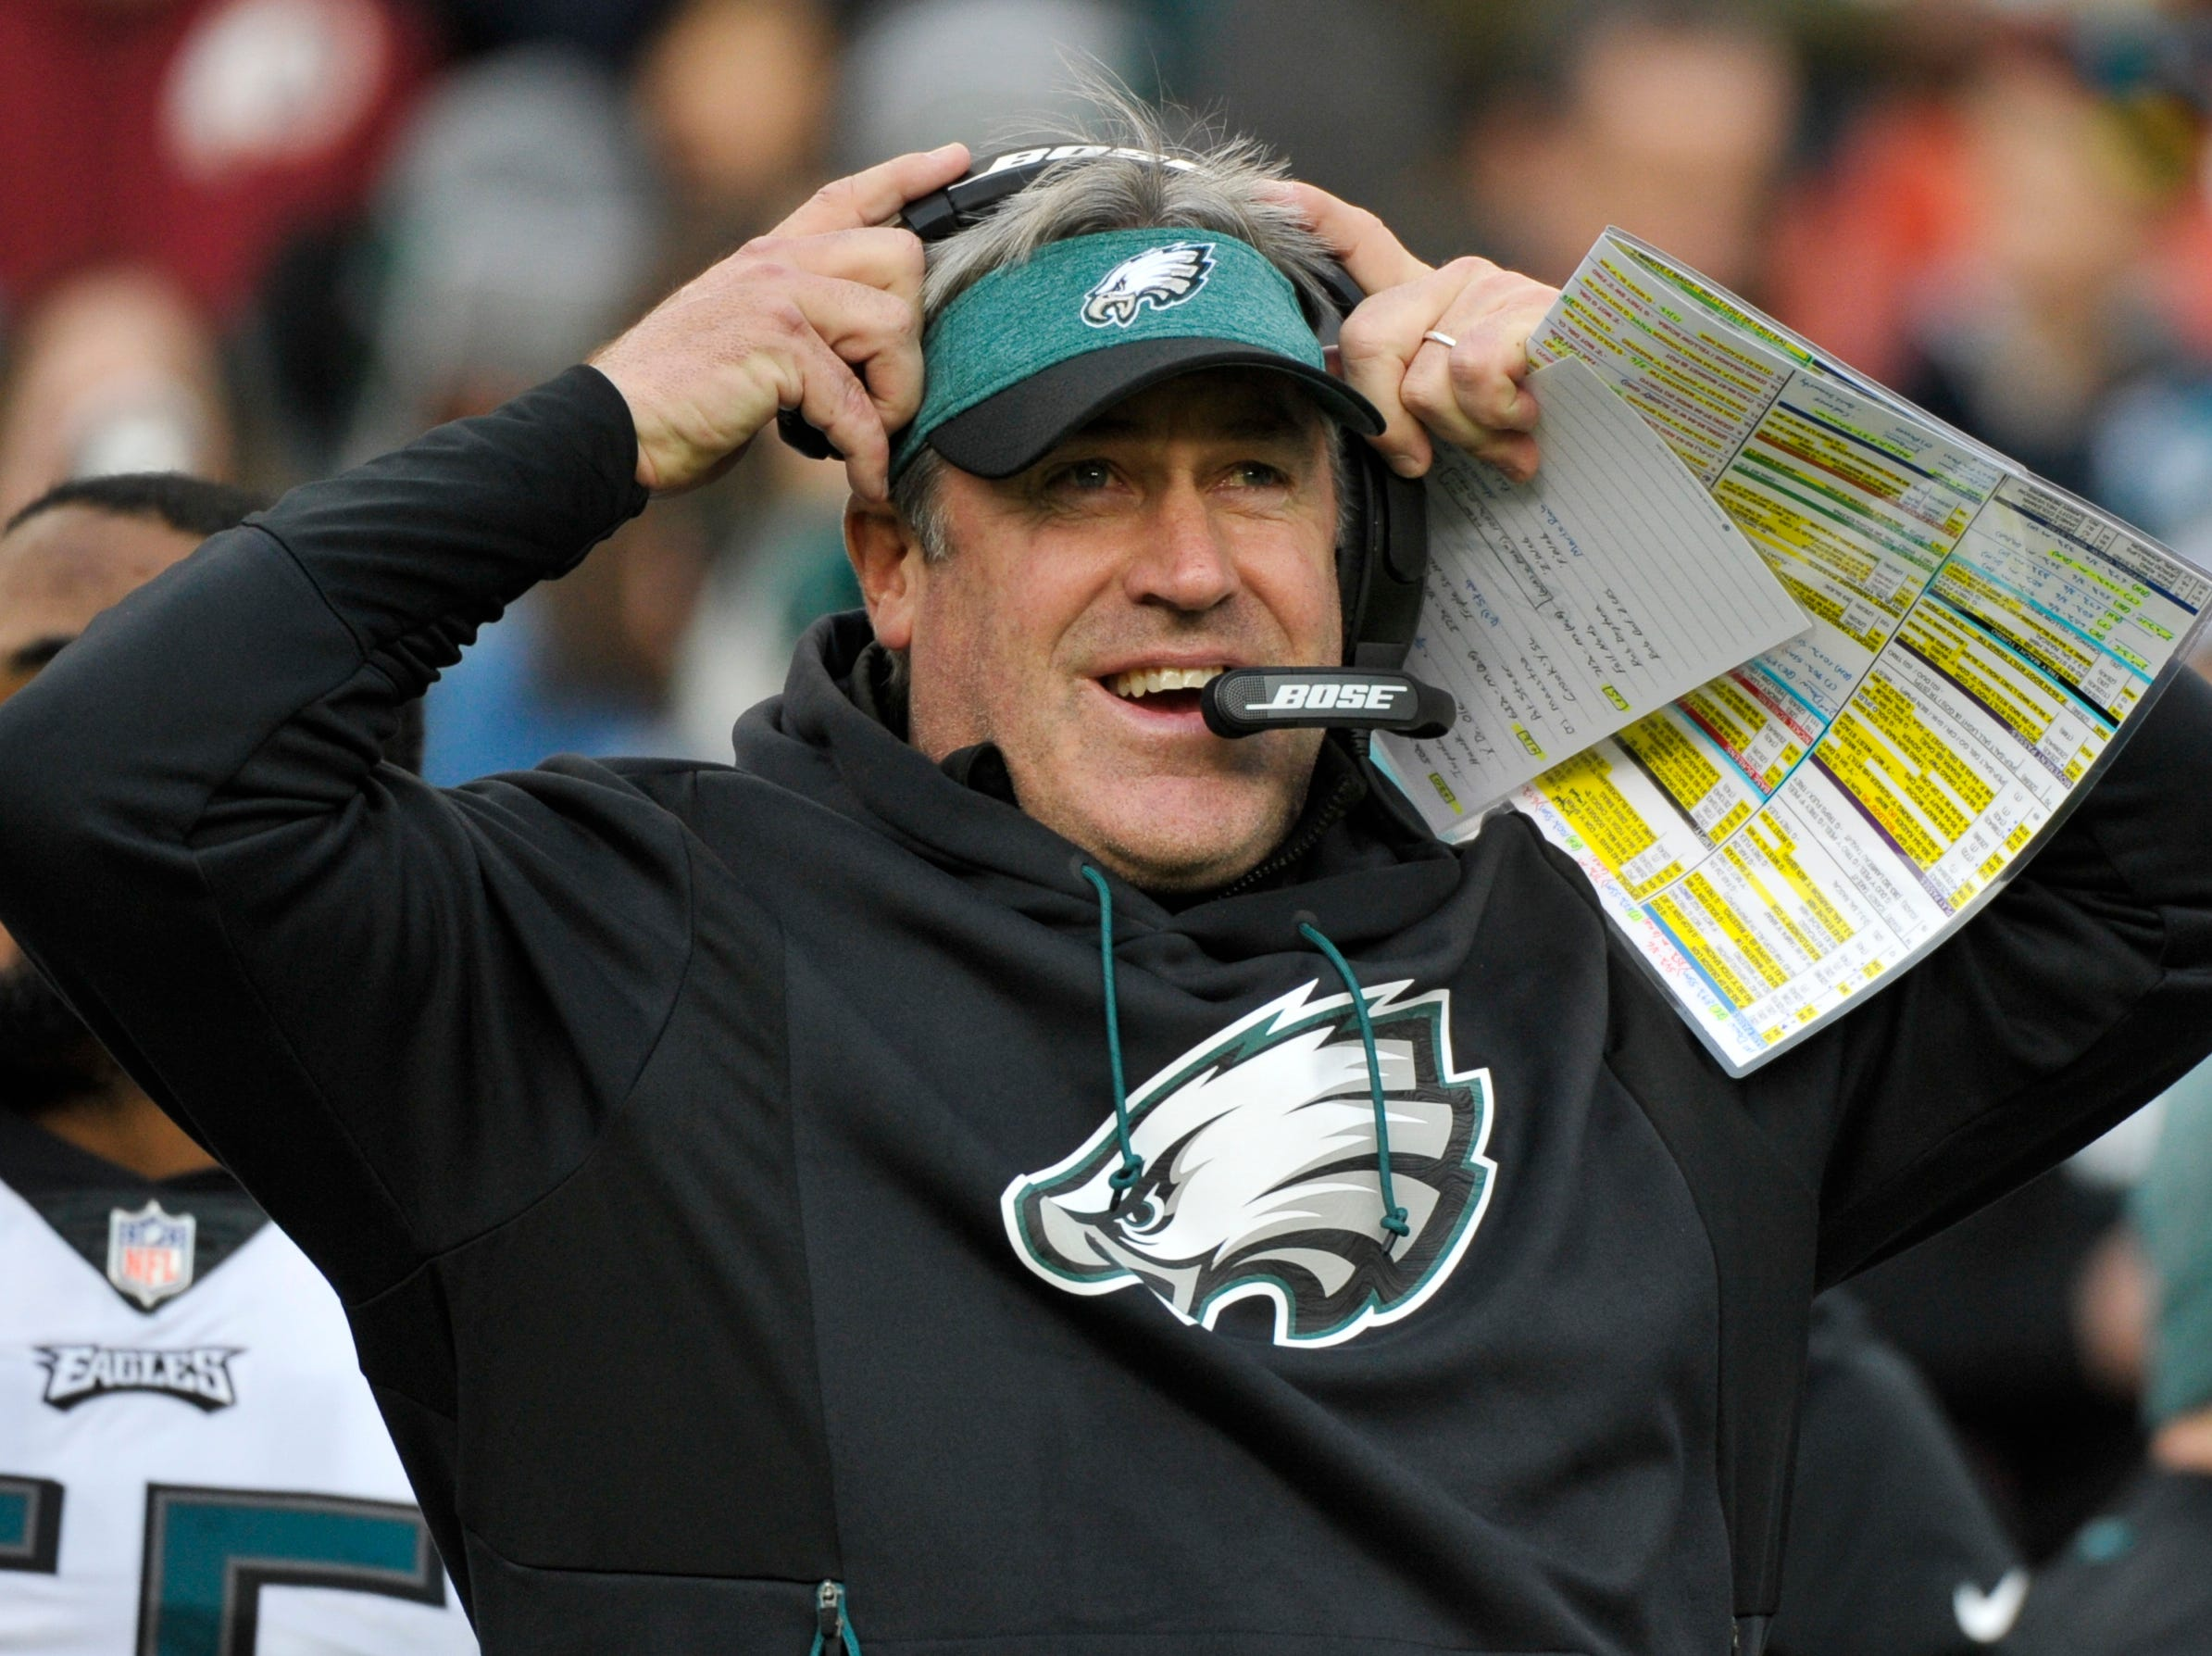 Philadelphia Eagles head coach Doug Pederson adjusts his headset during the first half of the NFL football game between the Washington Redskins and the Philadelphia Eagles, Sunday, Dec. 30, 2018 in Landover, Md. (AP Photo/Mark Tenally)